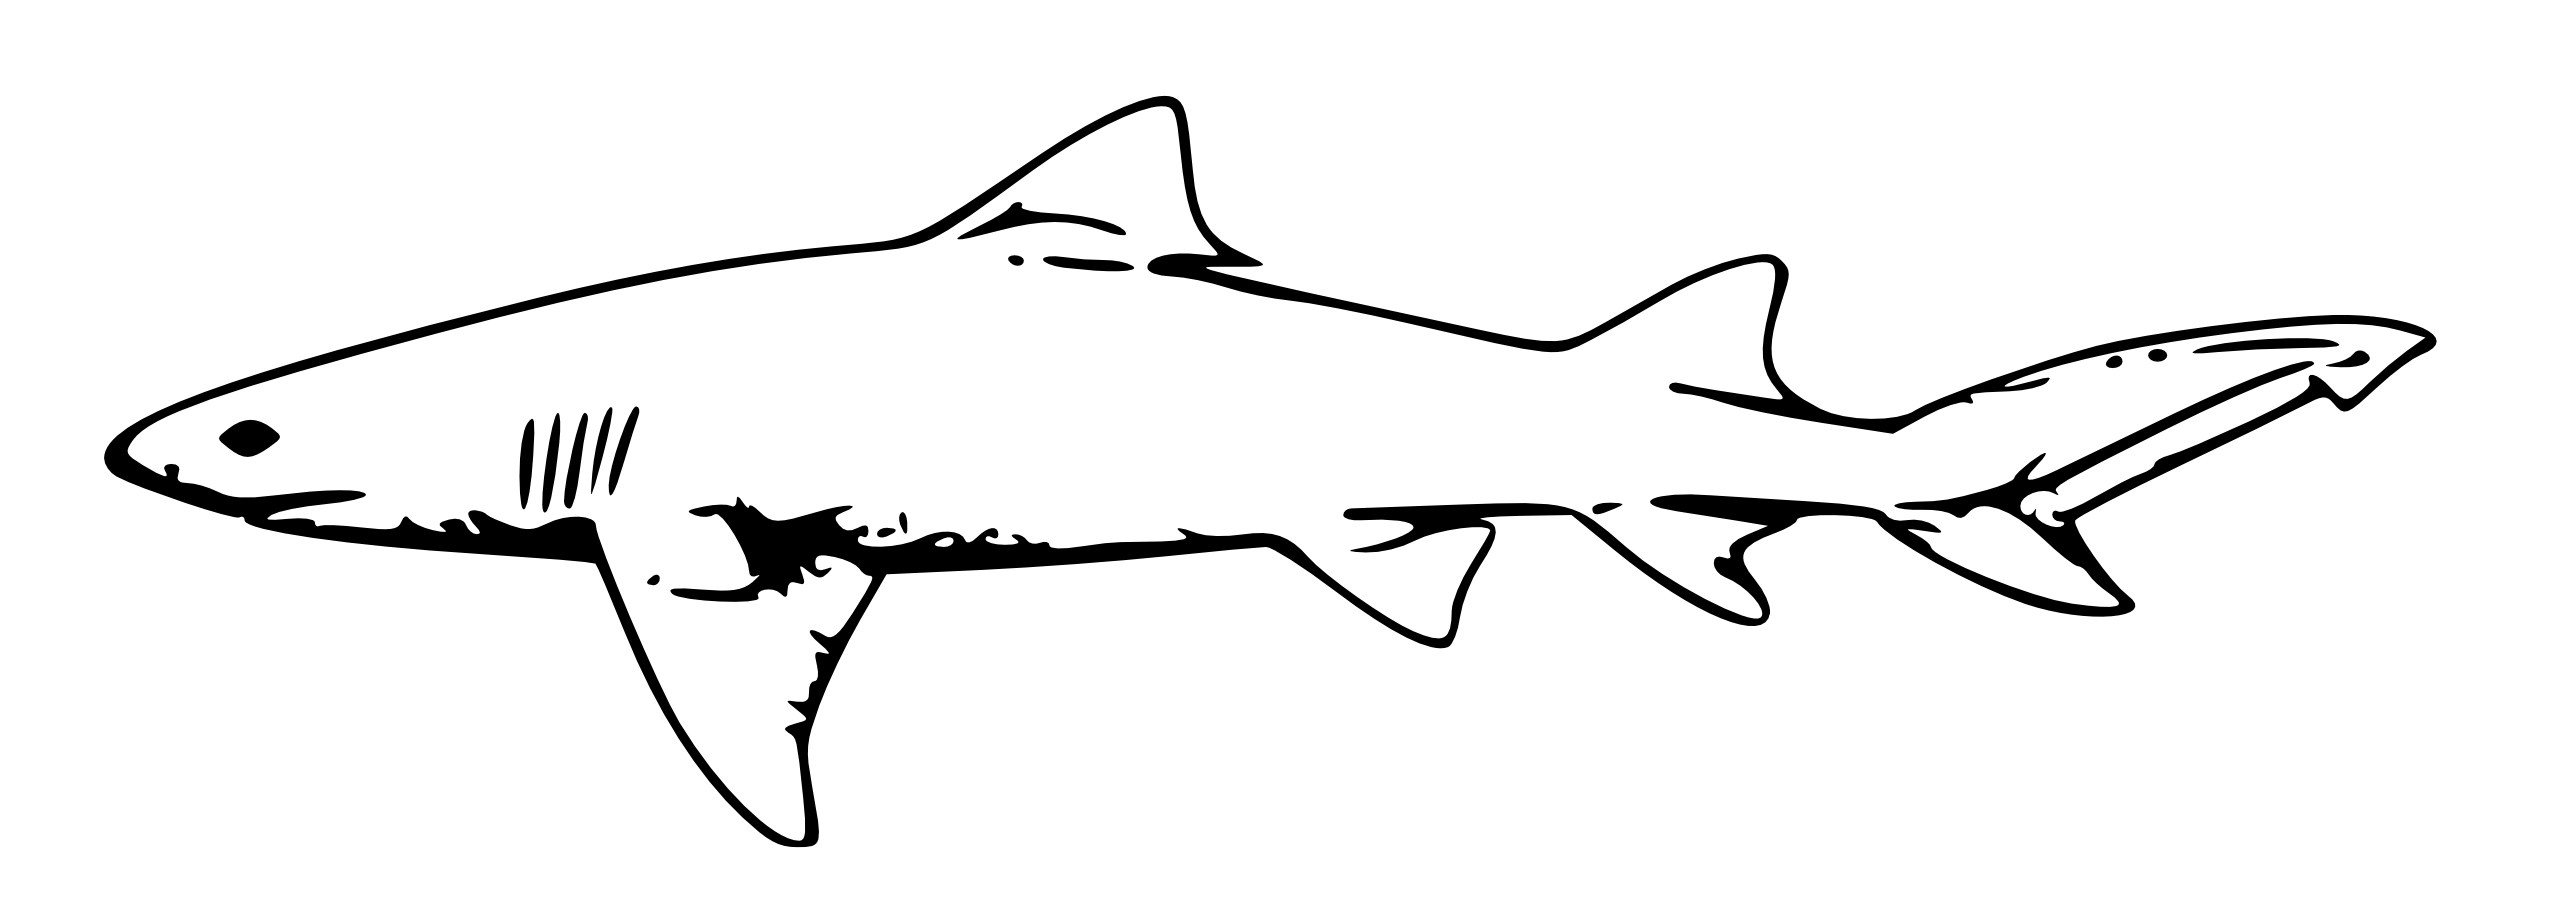 Shark black and white shark clip art black and white free clipart images